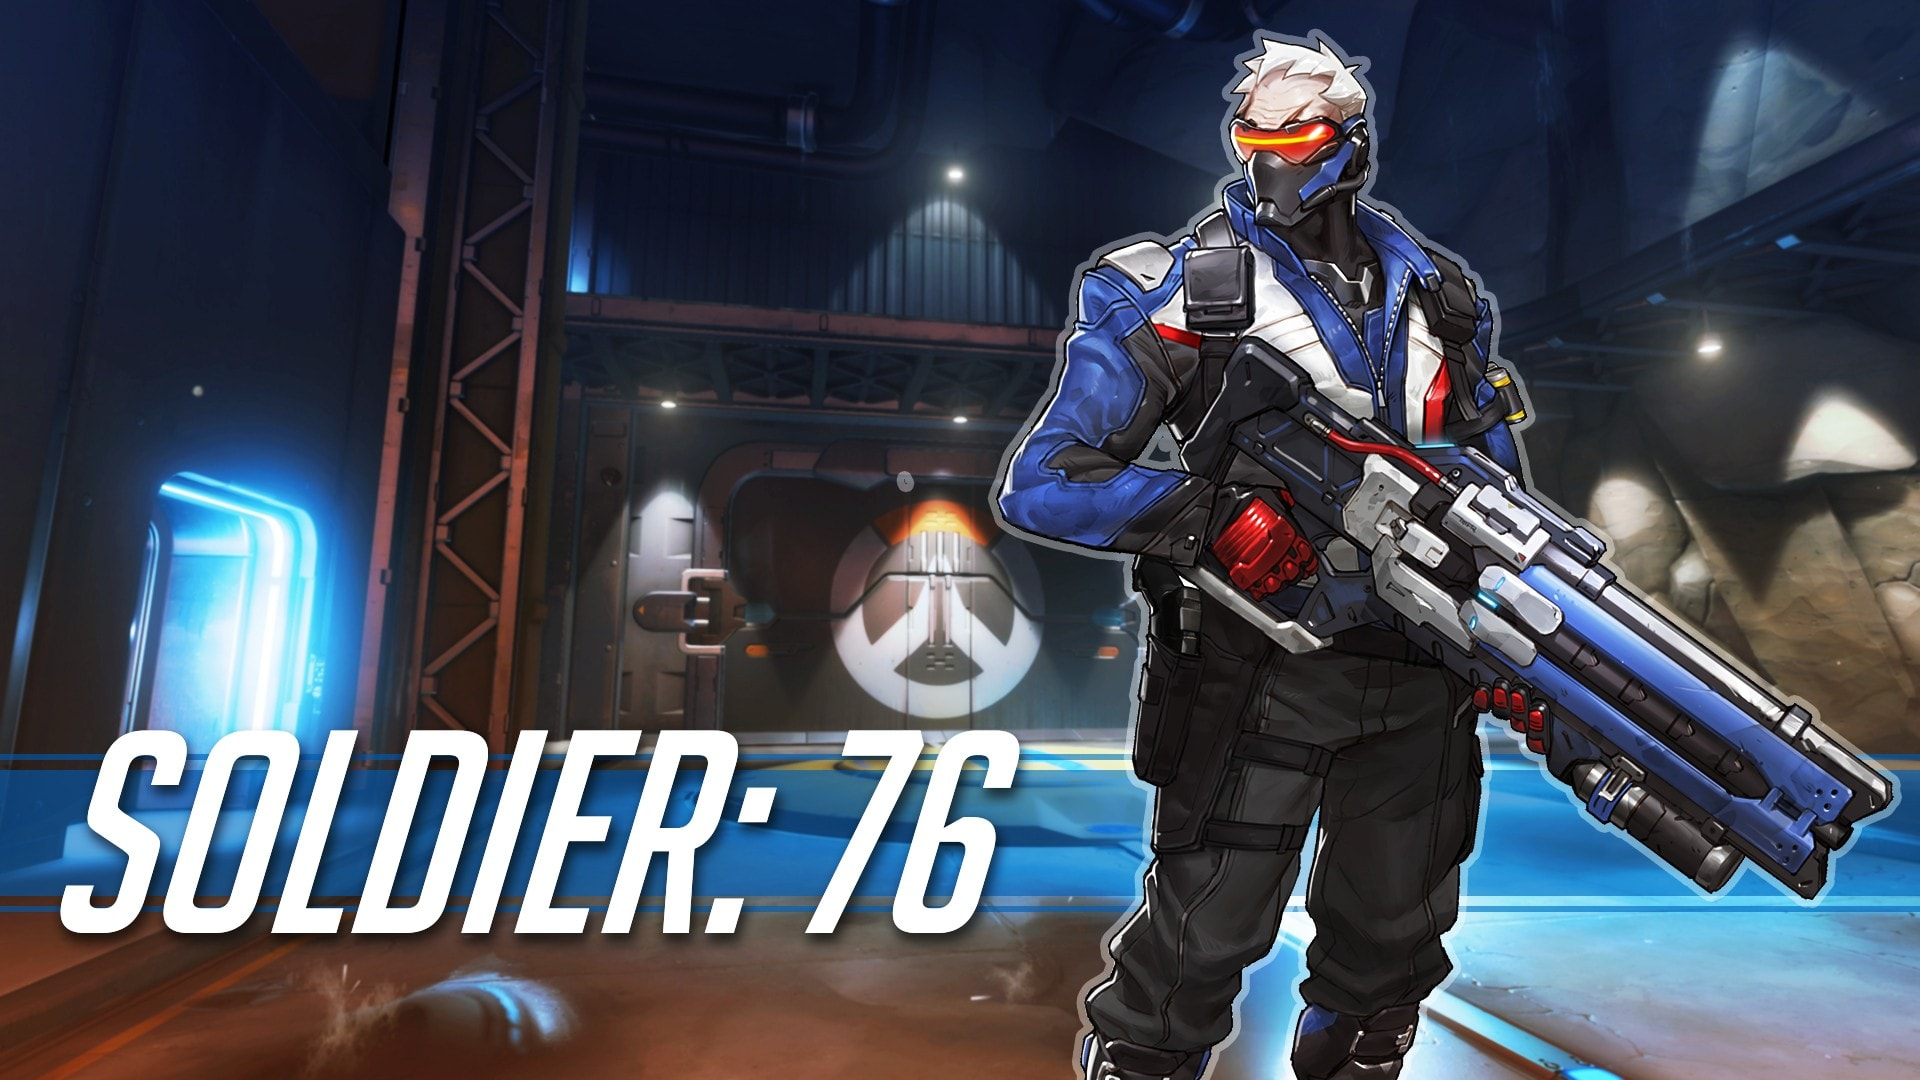 soldier 76 wallpaper - photo #18